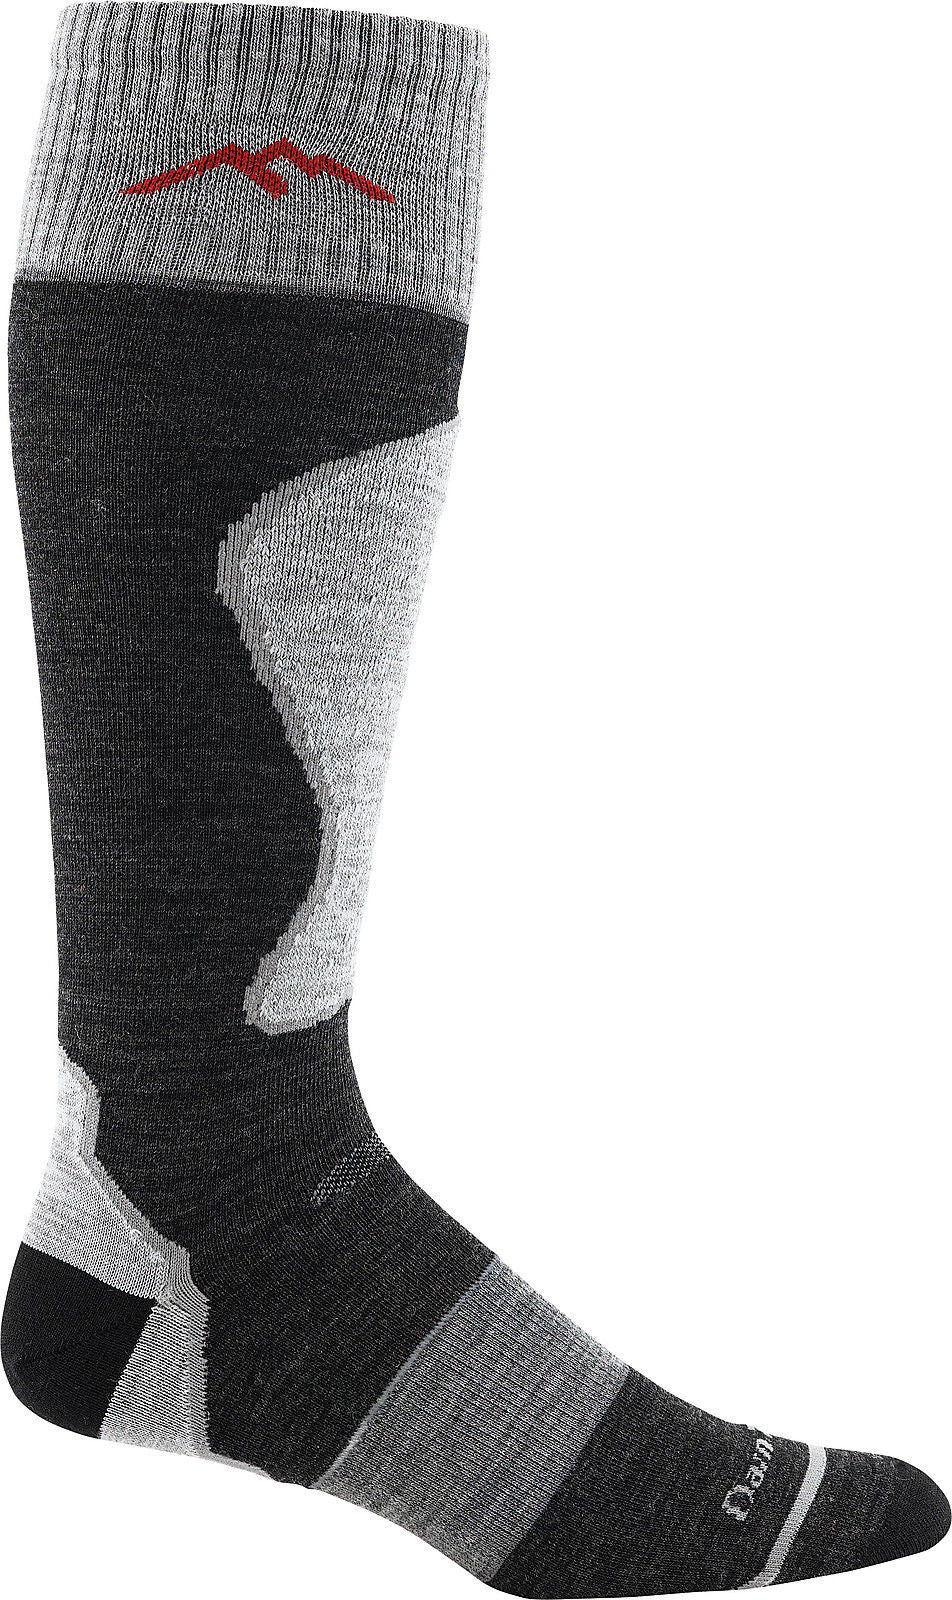 Men's Over-the-Calf Padded Light Knee High